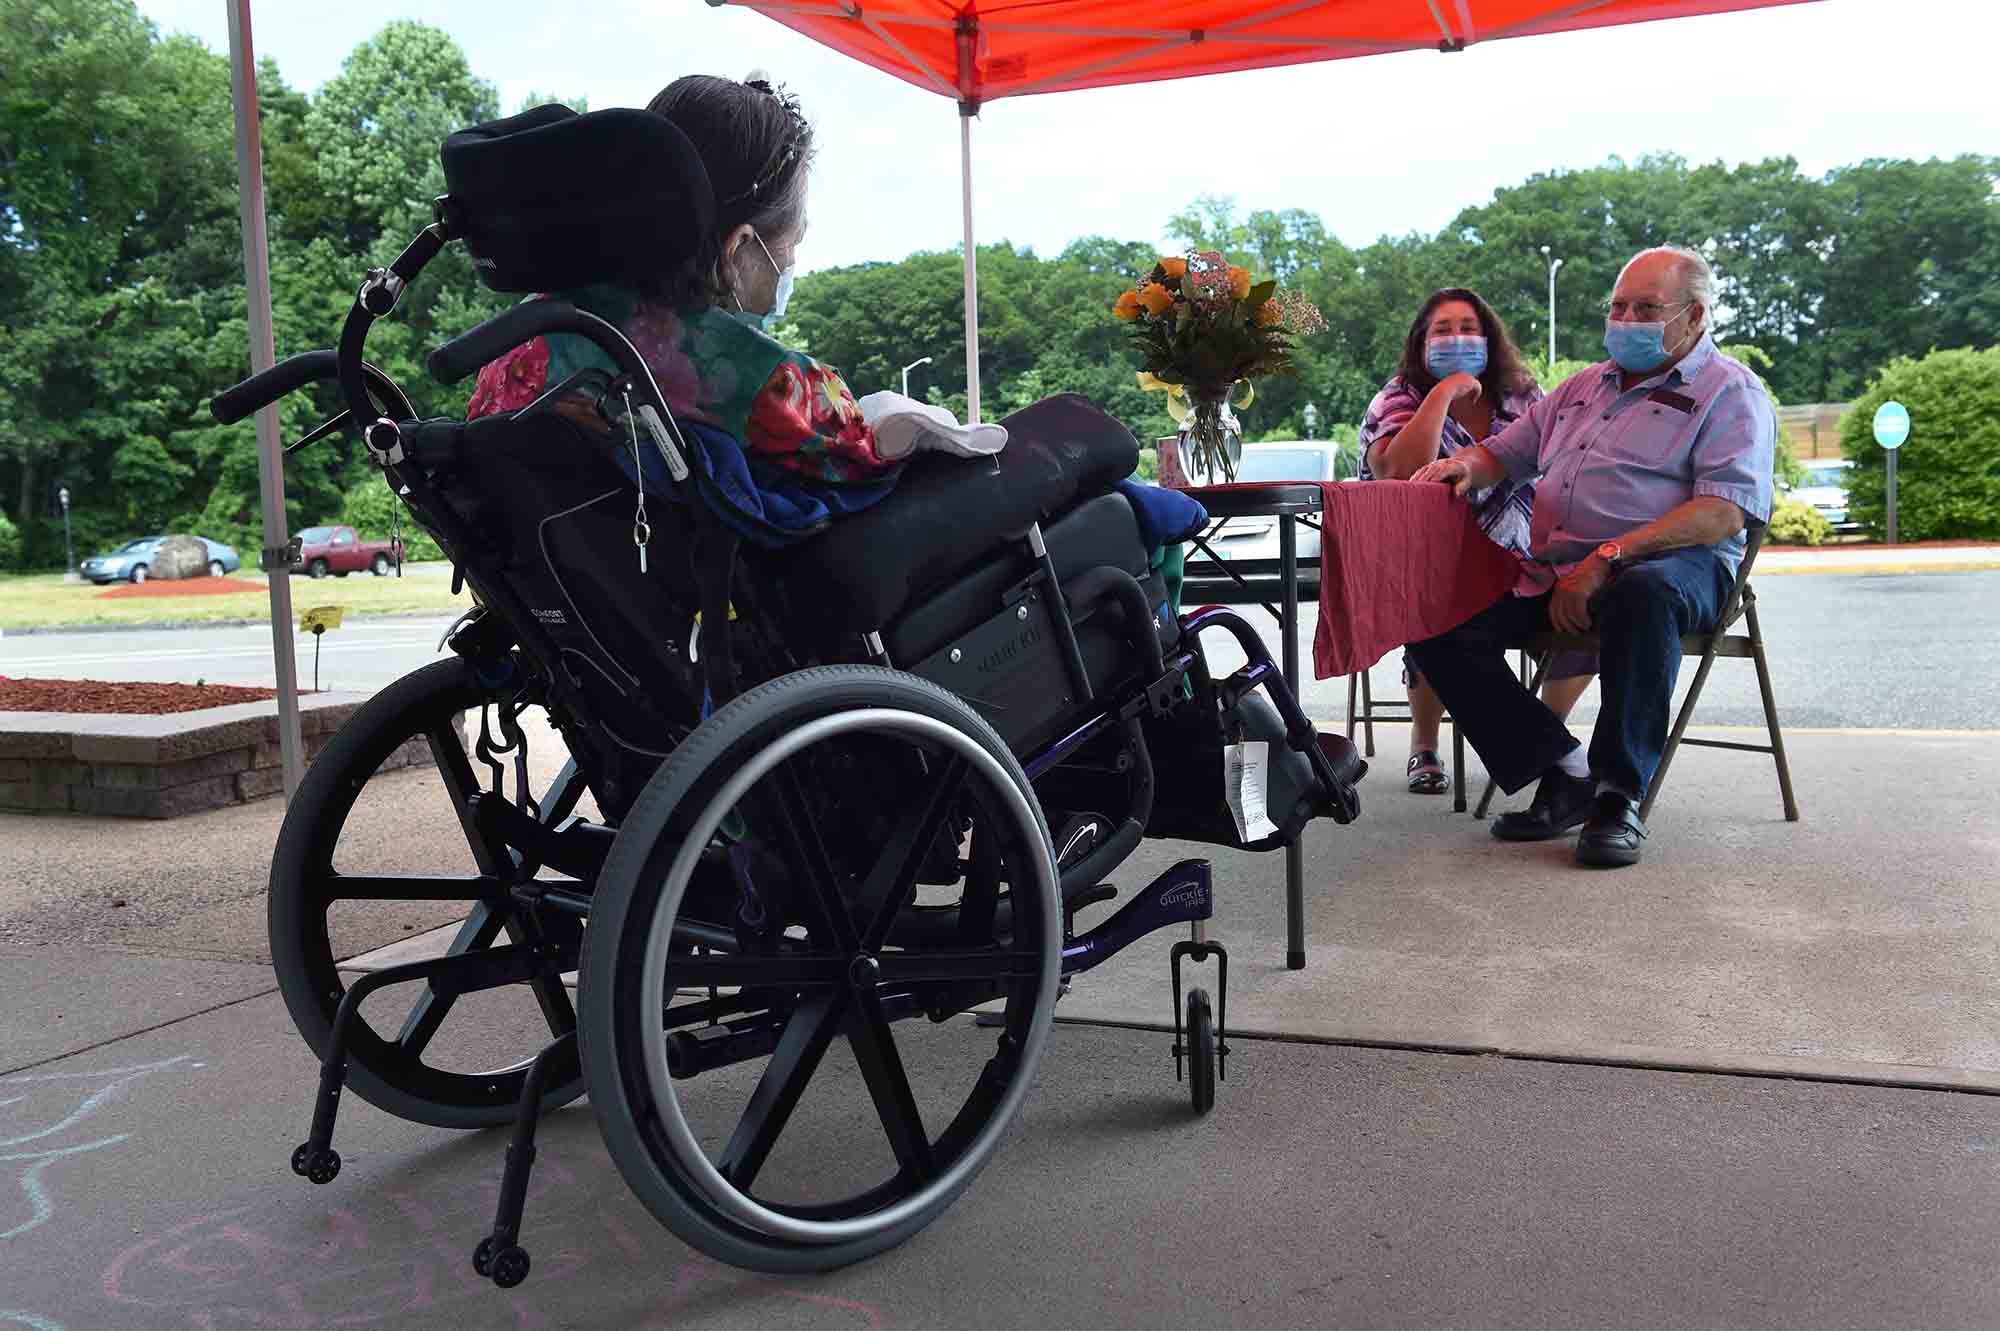 CT relaxes restrictions on indoor nursing home visits